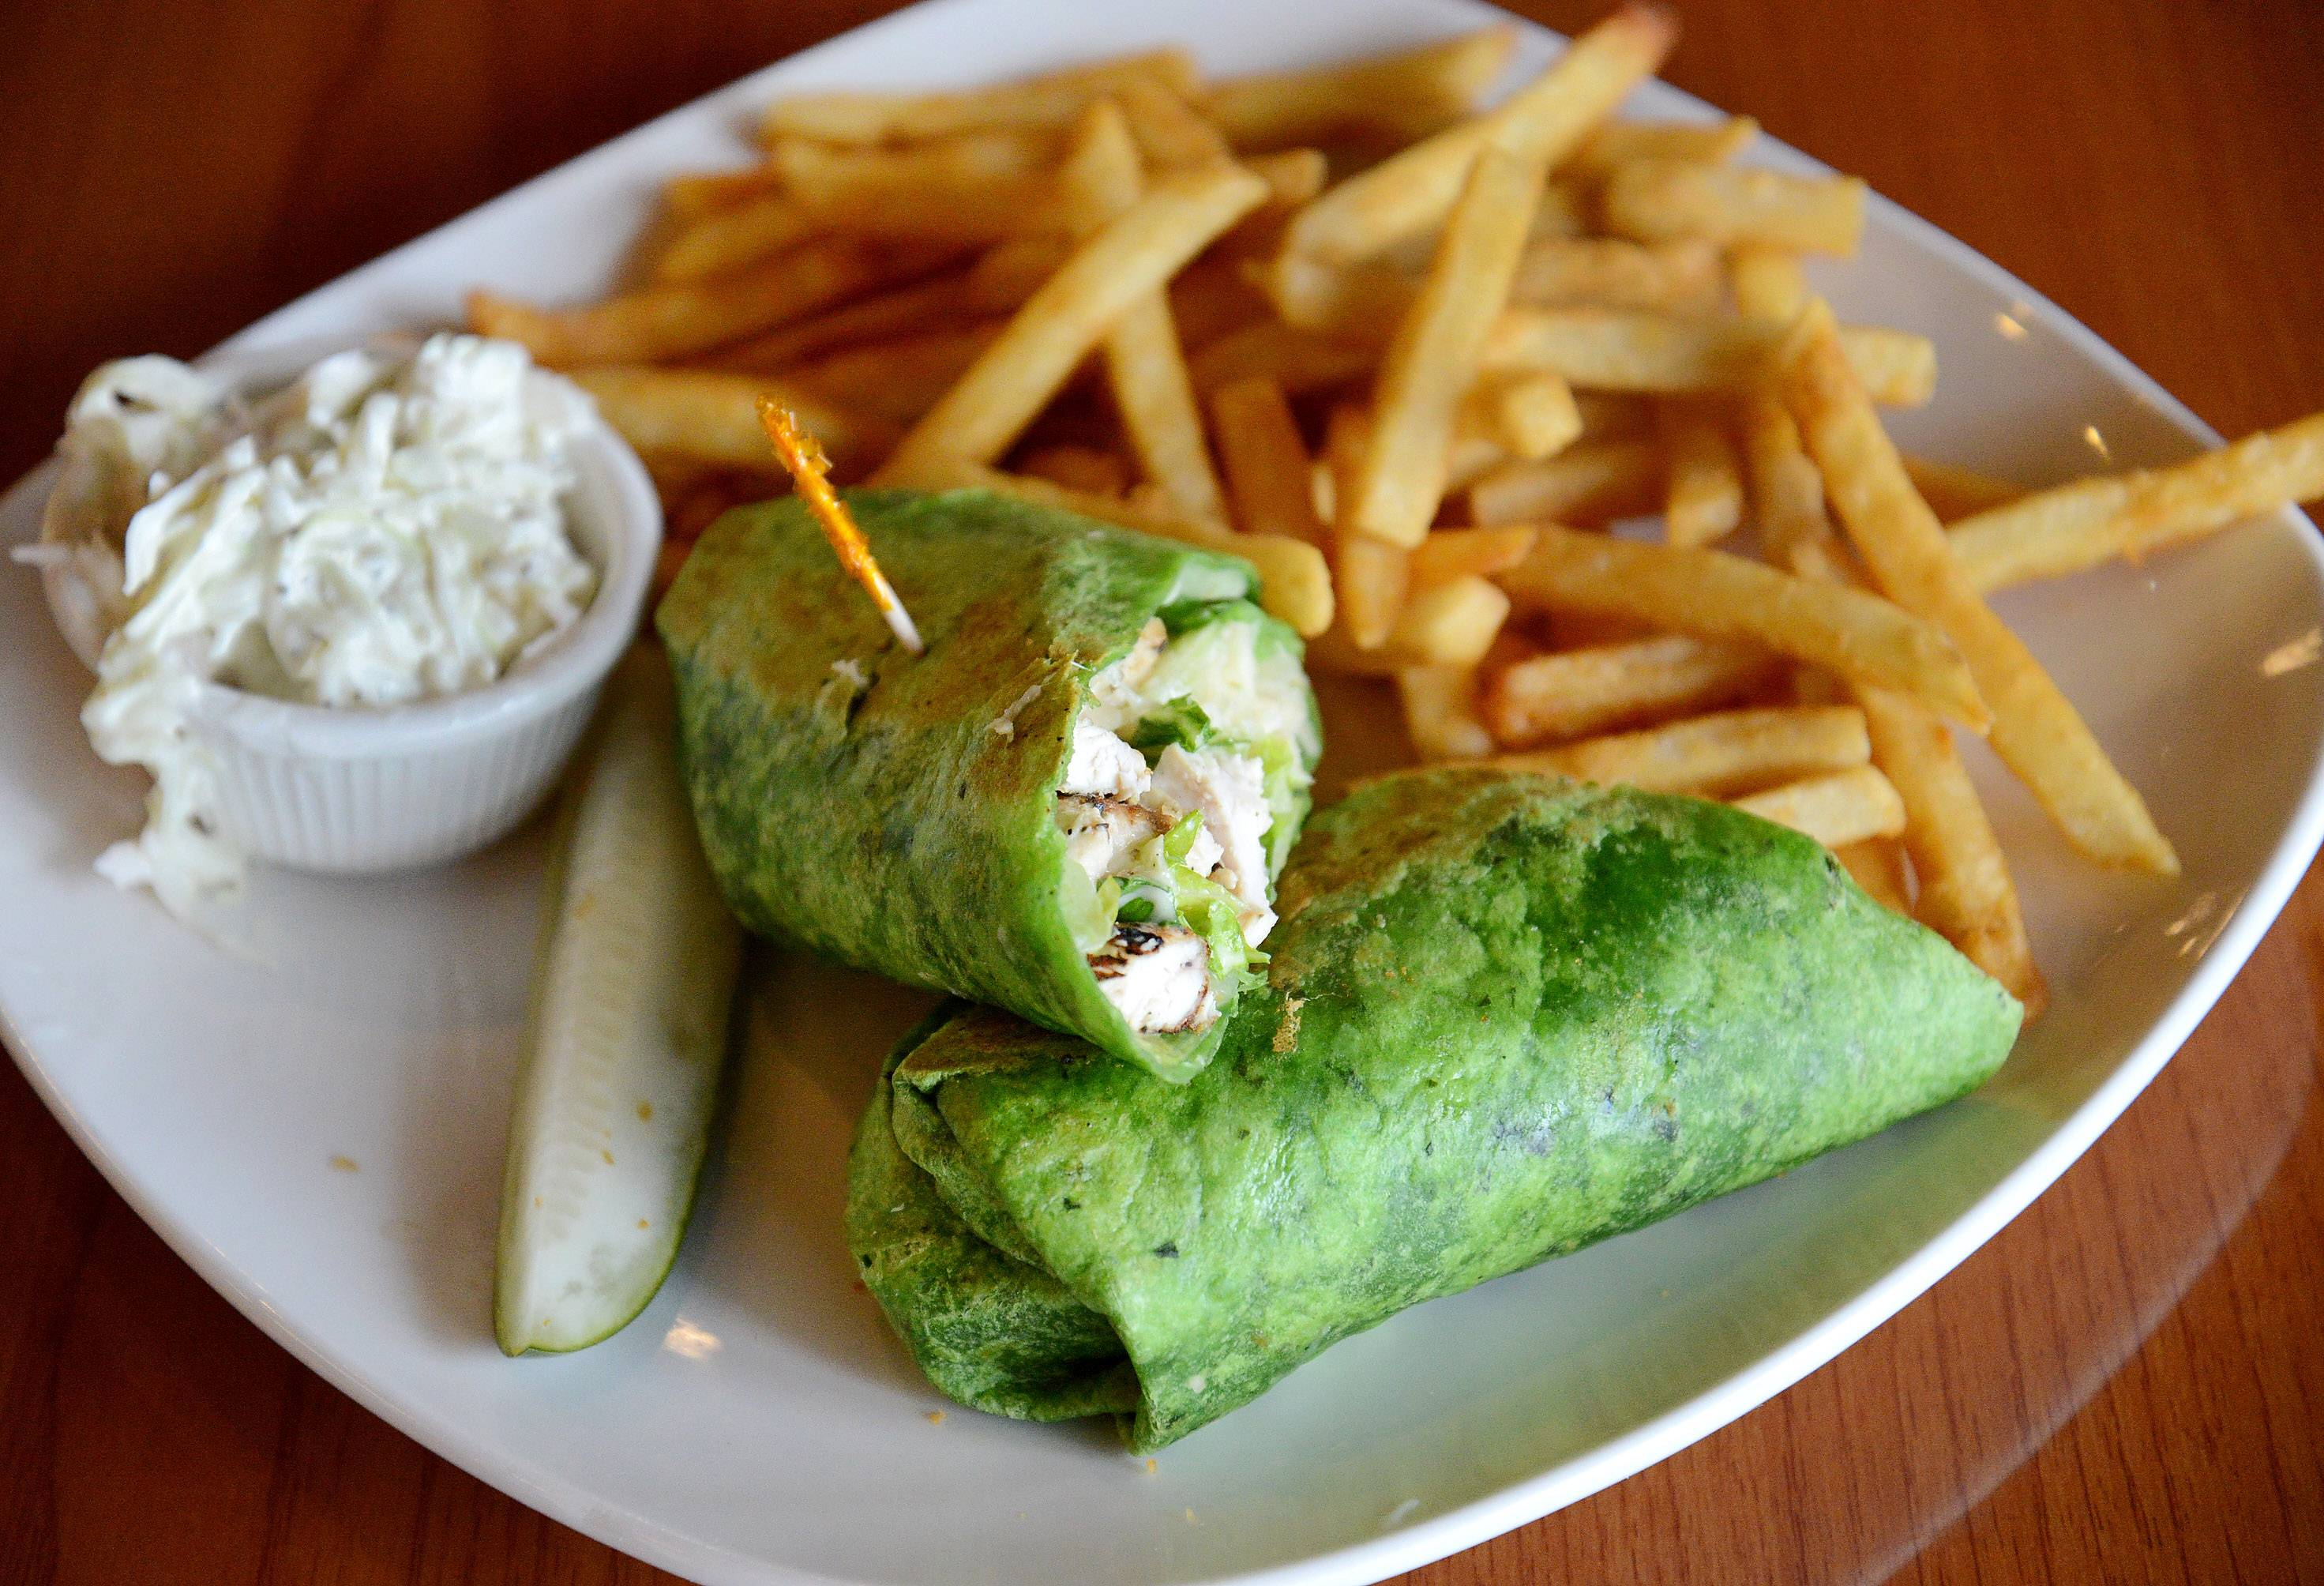 Love veggies? Maple Cafe's Baja veggie wrap -- roasted red pepper hummus, cucumber, tomato, olives, greens and grilled zucchini in a spinach tortilla -- might be for you.